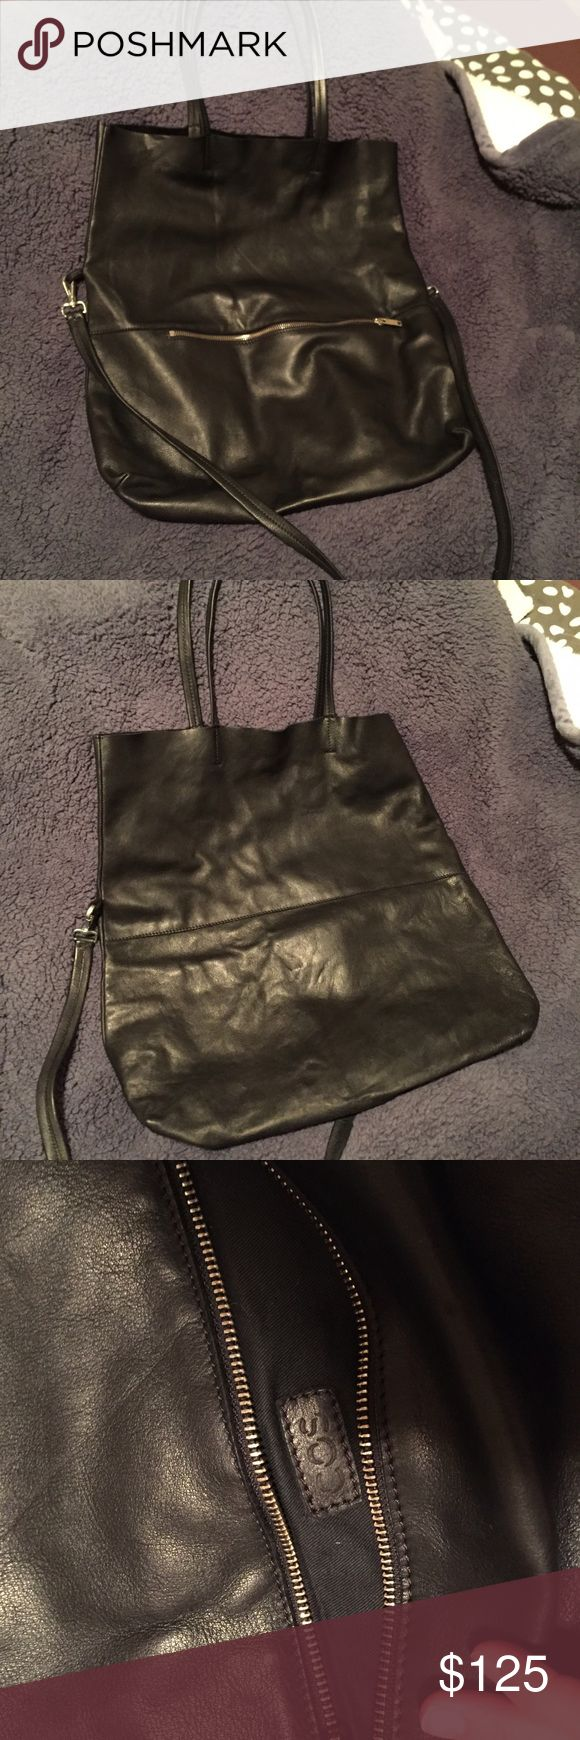 COS leather tote Super roomy tote that fits all your work essentials. 100% leather. Gently used. COS Bags Totes